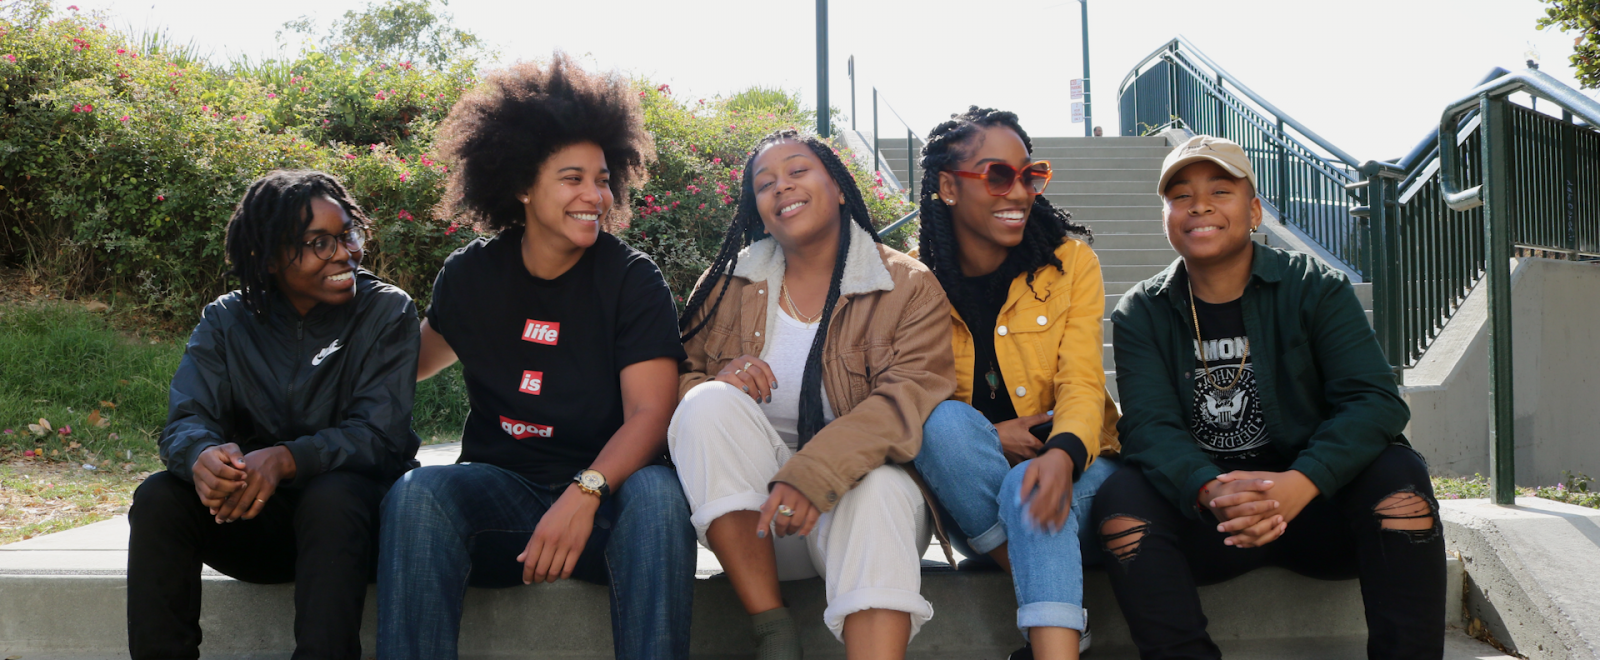 "A group of 5 Black women with dark brown skin and medium brown skin sit on a concrete wall, smiling and laughing while looking at each other and straight ahead. From left to right, a woman with glasses and dark brown hair in short twists smiles and rests their forearms on their knees, wearing a navy windbreaker, black pants, and a silver ring. Next to them, a tall woman with dark brown hair styled into a large natural afro smiles and wraps her arm around the woman to her left, wearing light colored stud earrings, light colored watch, a black shirt with white text on red blocks of color that reads ""life is good,"" and blue jeans. In the middle, a woman with long black brown braids smiles at the camera with her head titled slightly back and arms resting on her knees, wearing multiple light colored necklaces, white shirt, tan jacket, and beige pants. Next to her, a tall woman with shoulder length black twists with gold beads smiles and leans into the woman next to her, wearing large reddish orange sunglasses, small light colored stud earrings, a black shirt, a yellow jacket with large silver snap buttons, and blue jeans. Furthest to the right, a woman with hair hidden under a beige baseball cap smiles at the camera and rests her hands on one knee, wearing small gold earrings, long gold necklace, black shirt with white graphics, dark colored jacket and pants. In the background, there is grass and green bushes with pink flowers on the left, and concrete stairs with green poles and railings on the right."